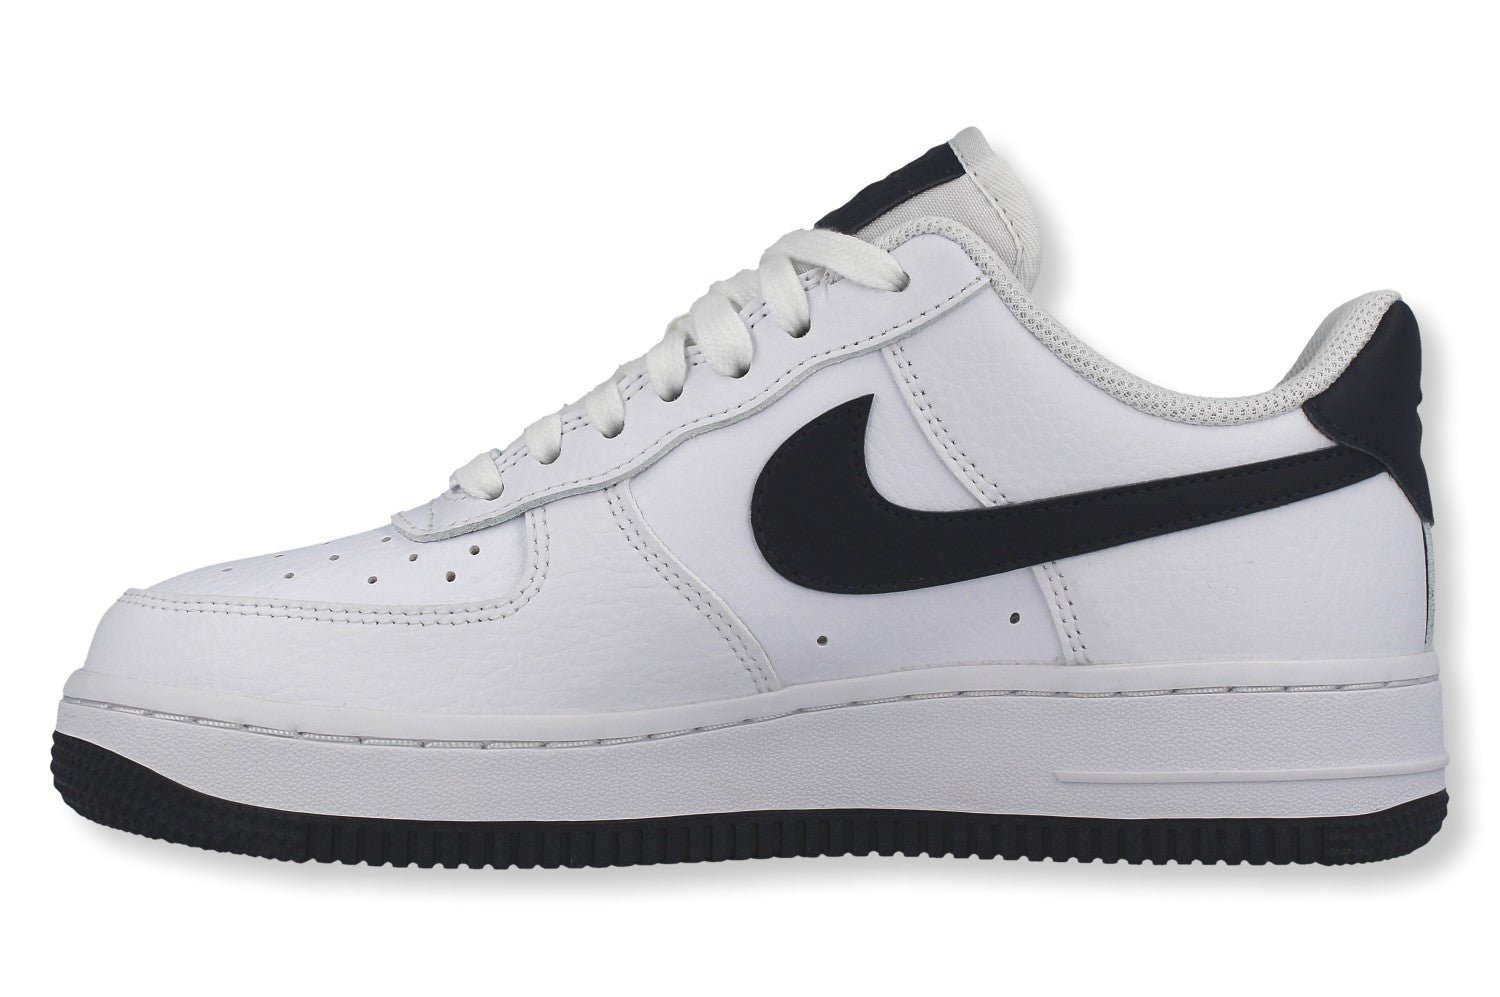 WMNS Air Force 1 '07 - Schrittmacher Shop